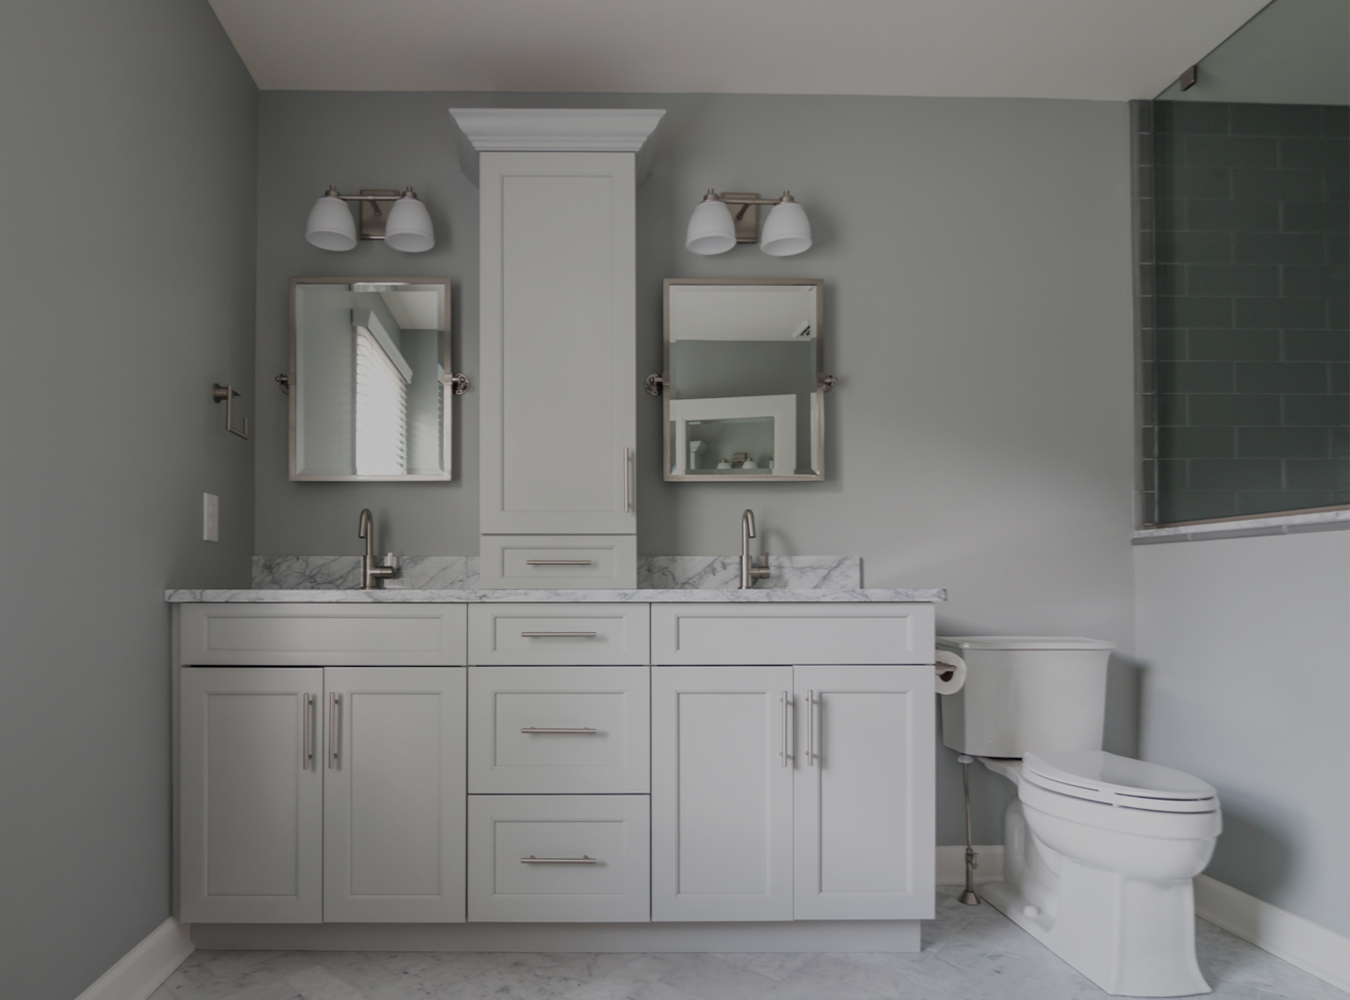 Bath design contractor lehigh valley pa